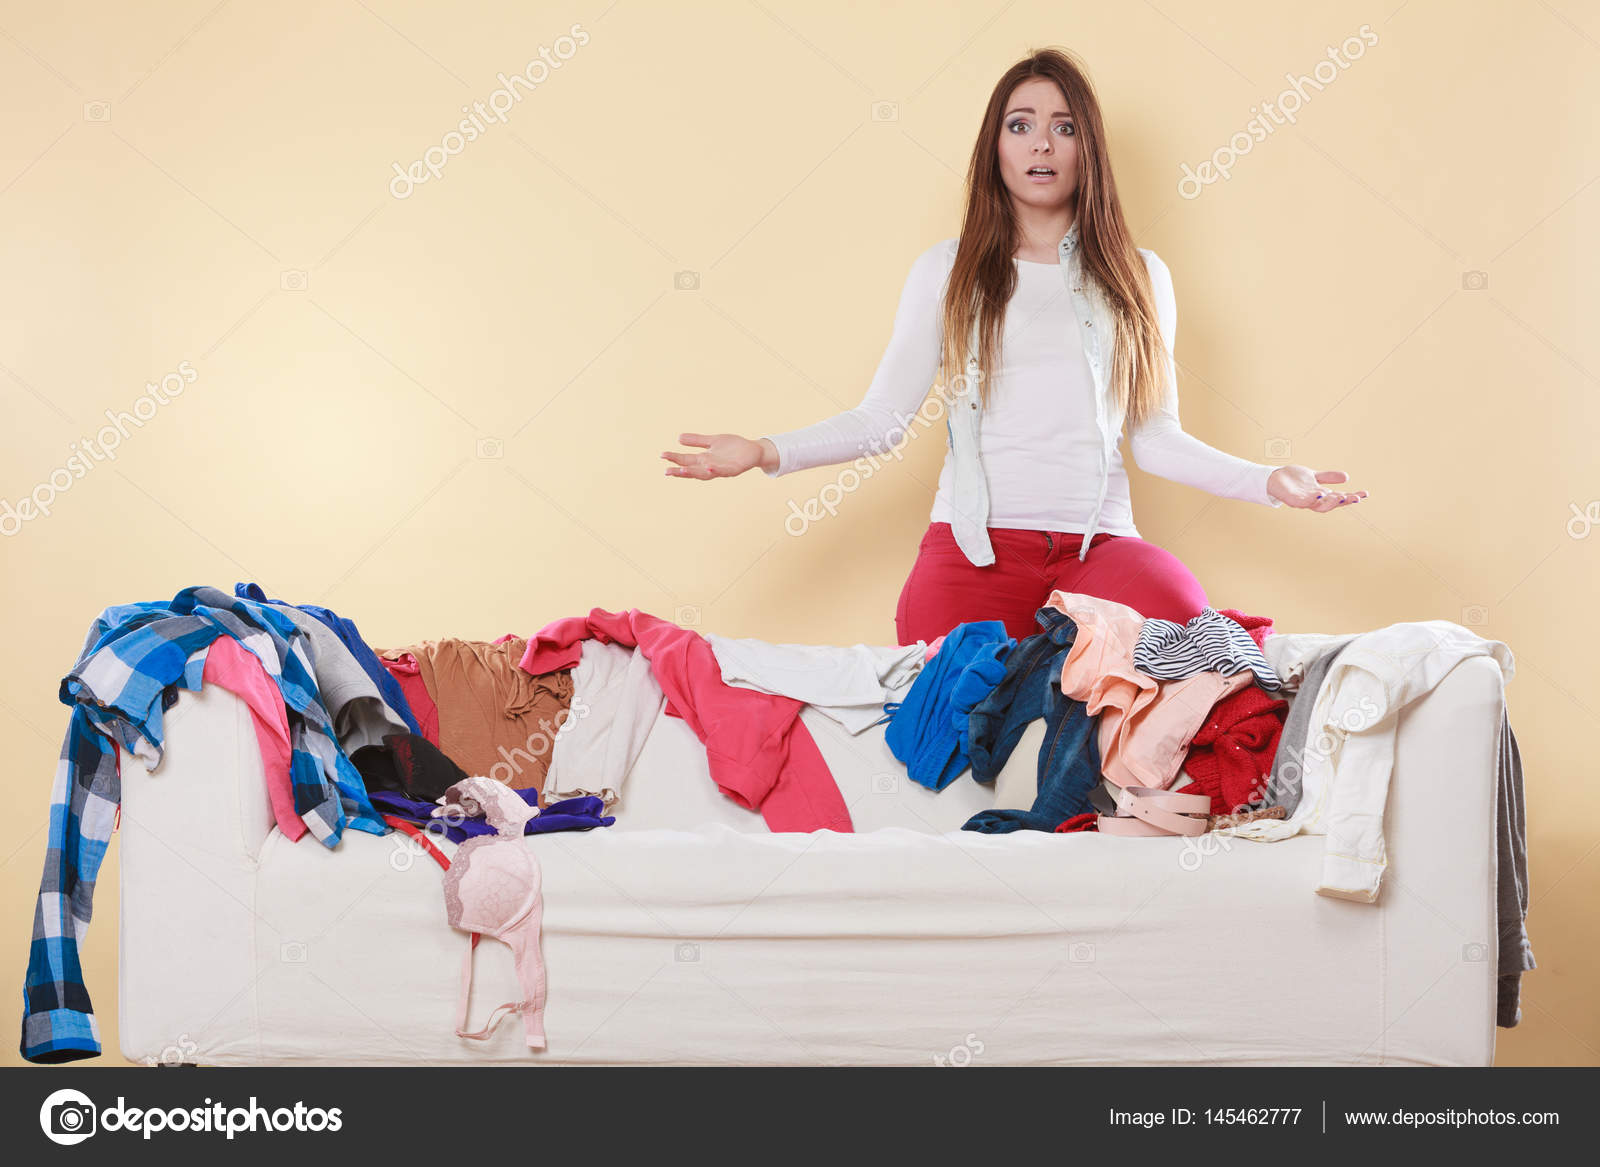 5e6b39624b Helpless woman standing behind on sofa couch in messy living room  shrugging. Young girl surrounded by many stack of clothes. Disorder and mess  at home.